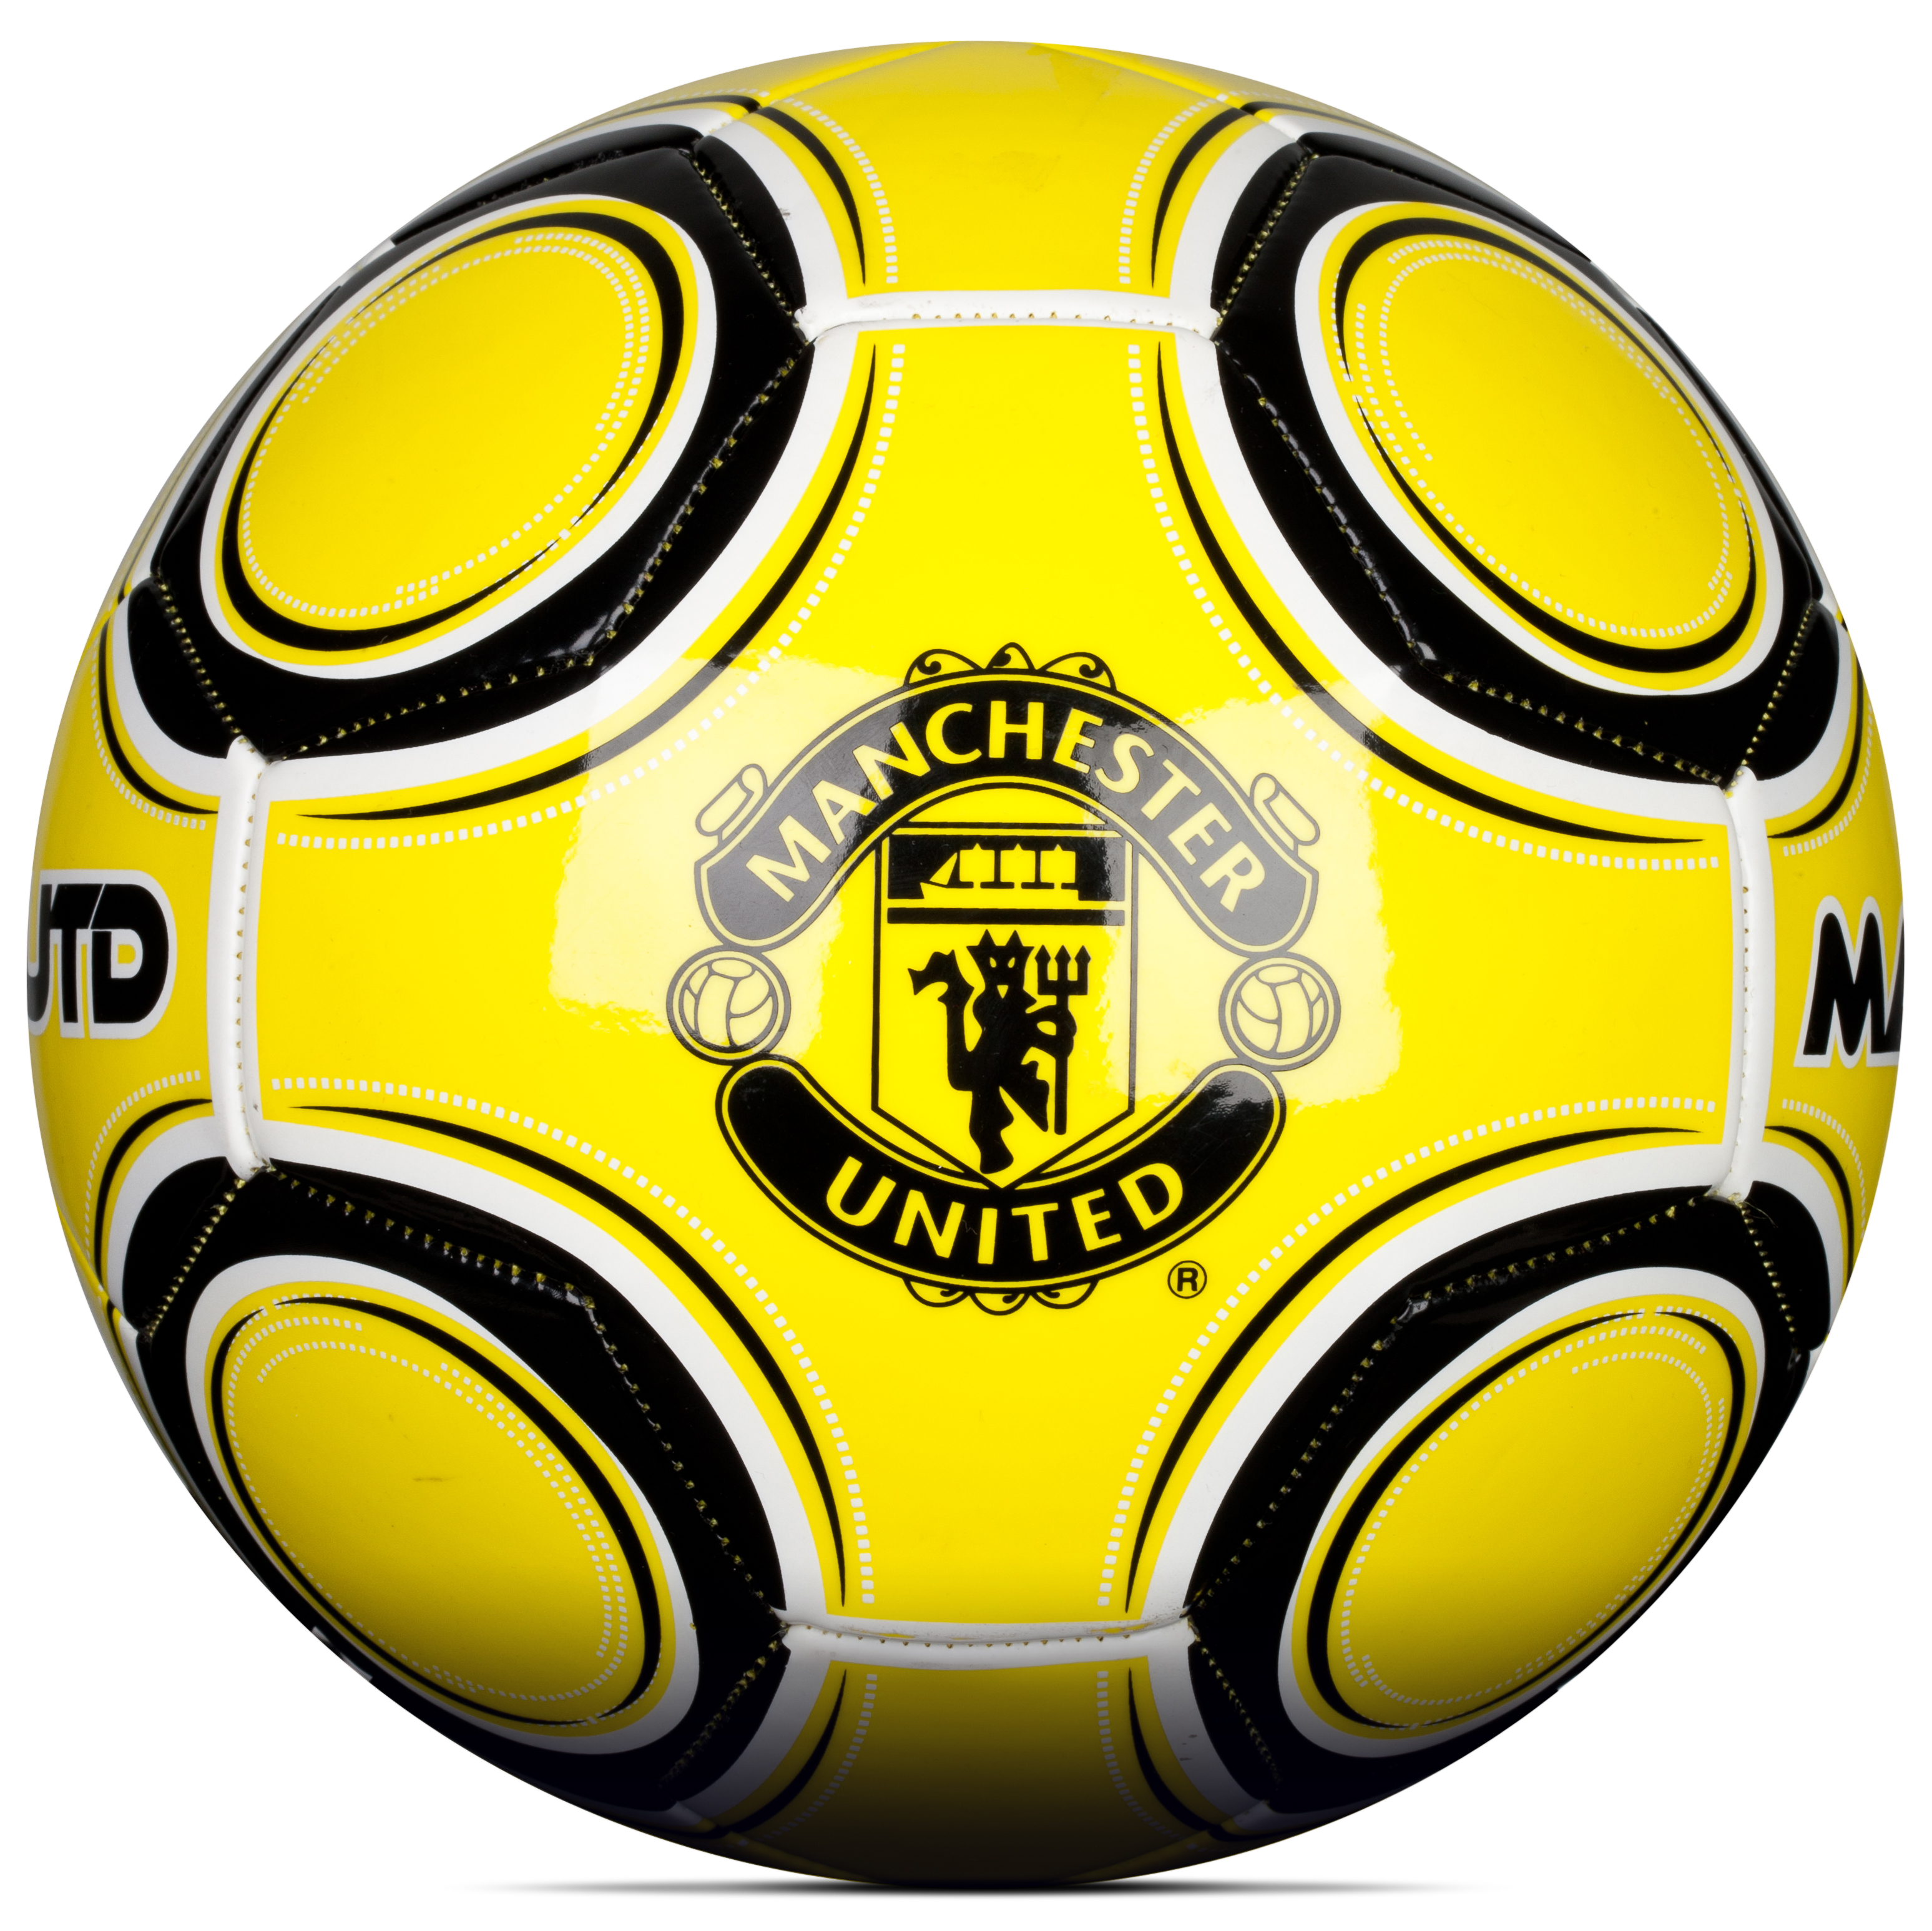 Manchester United Sphere Football - Size 5 - Fluorescent Yellow